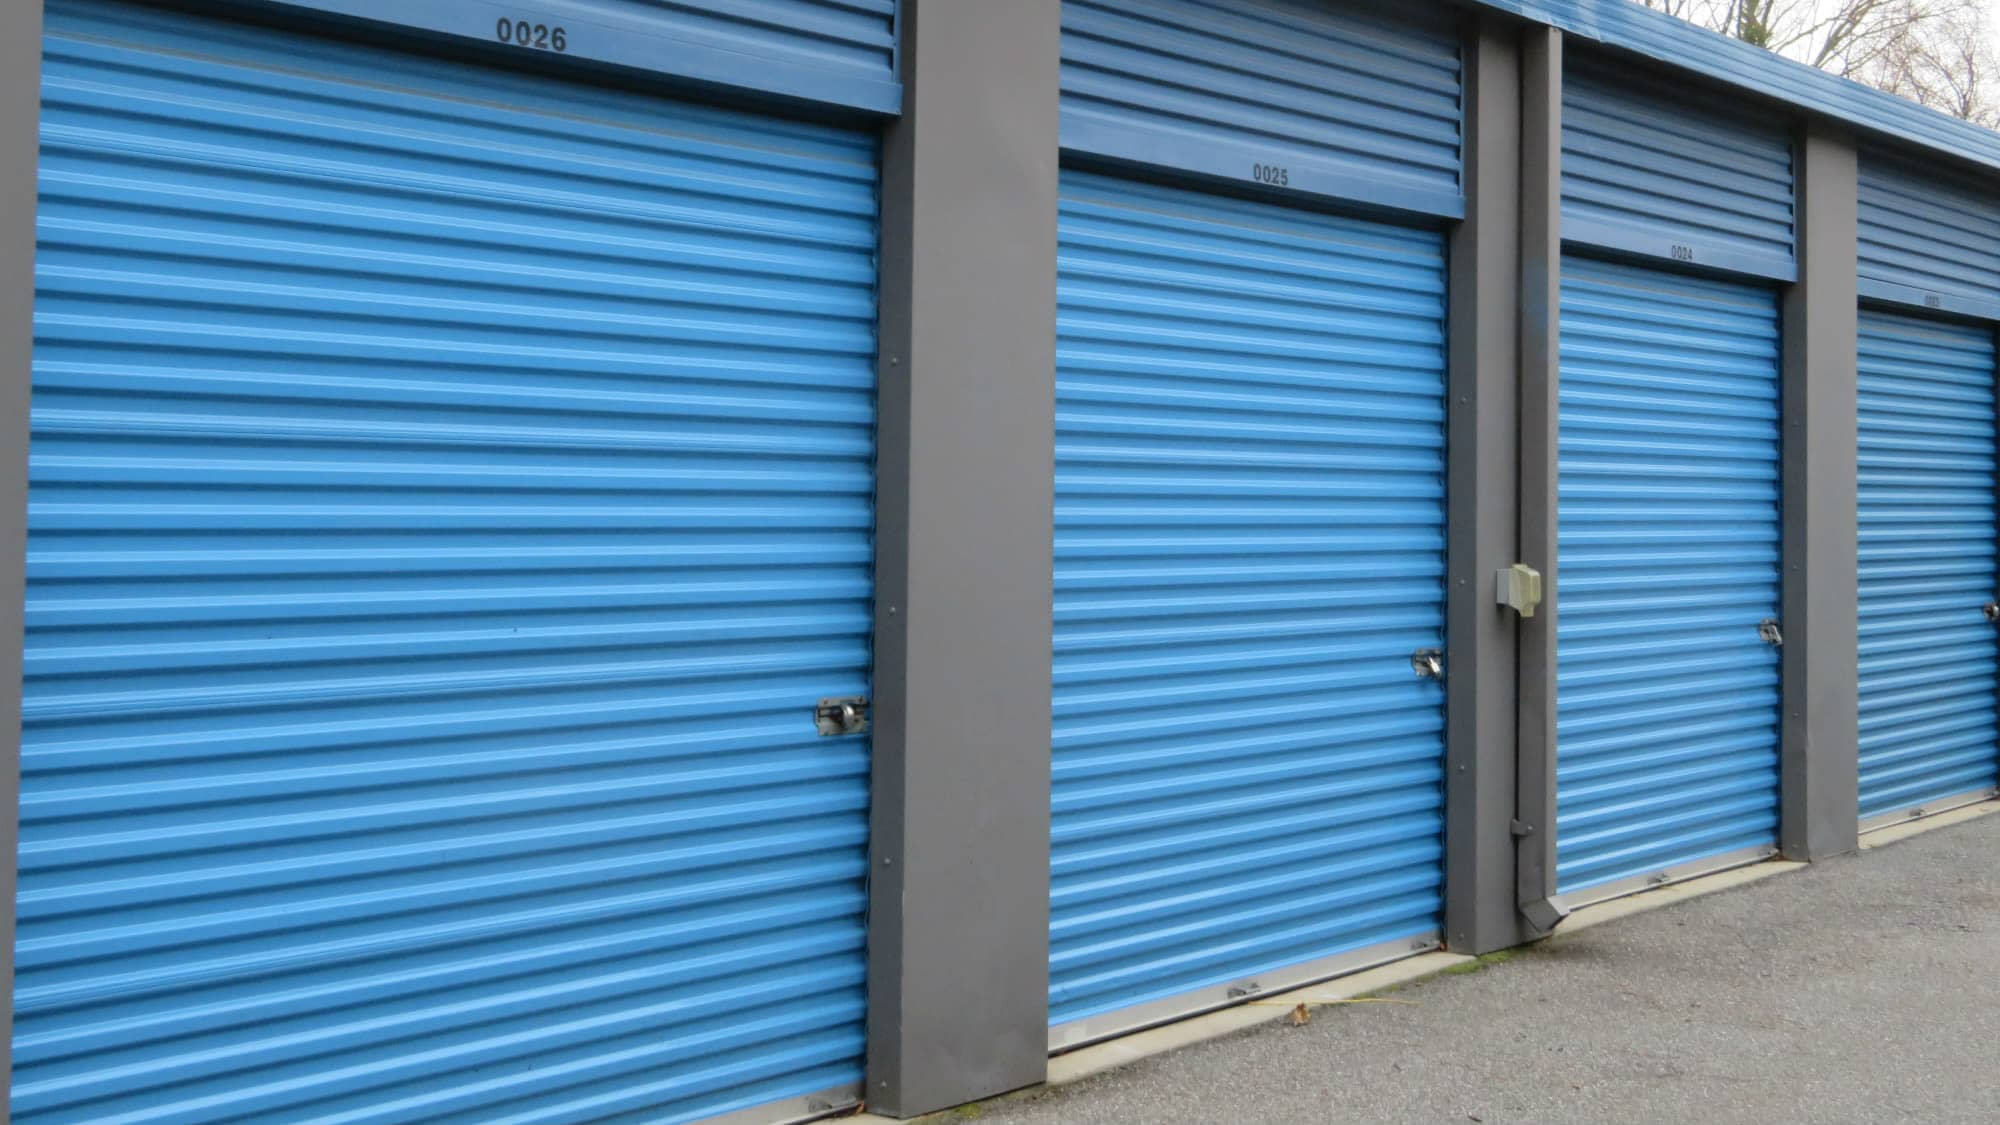 Roll-up doors at Self Storage Plus in Gambrills, MD